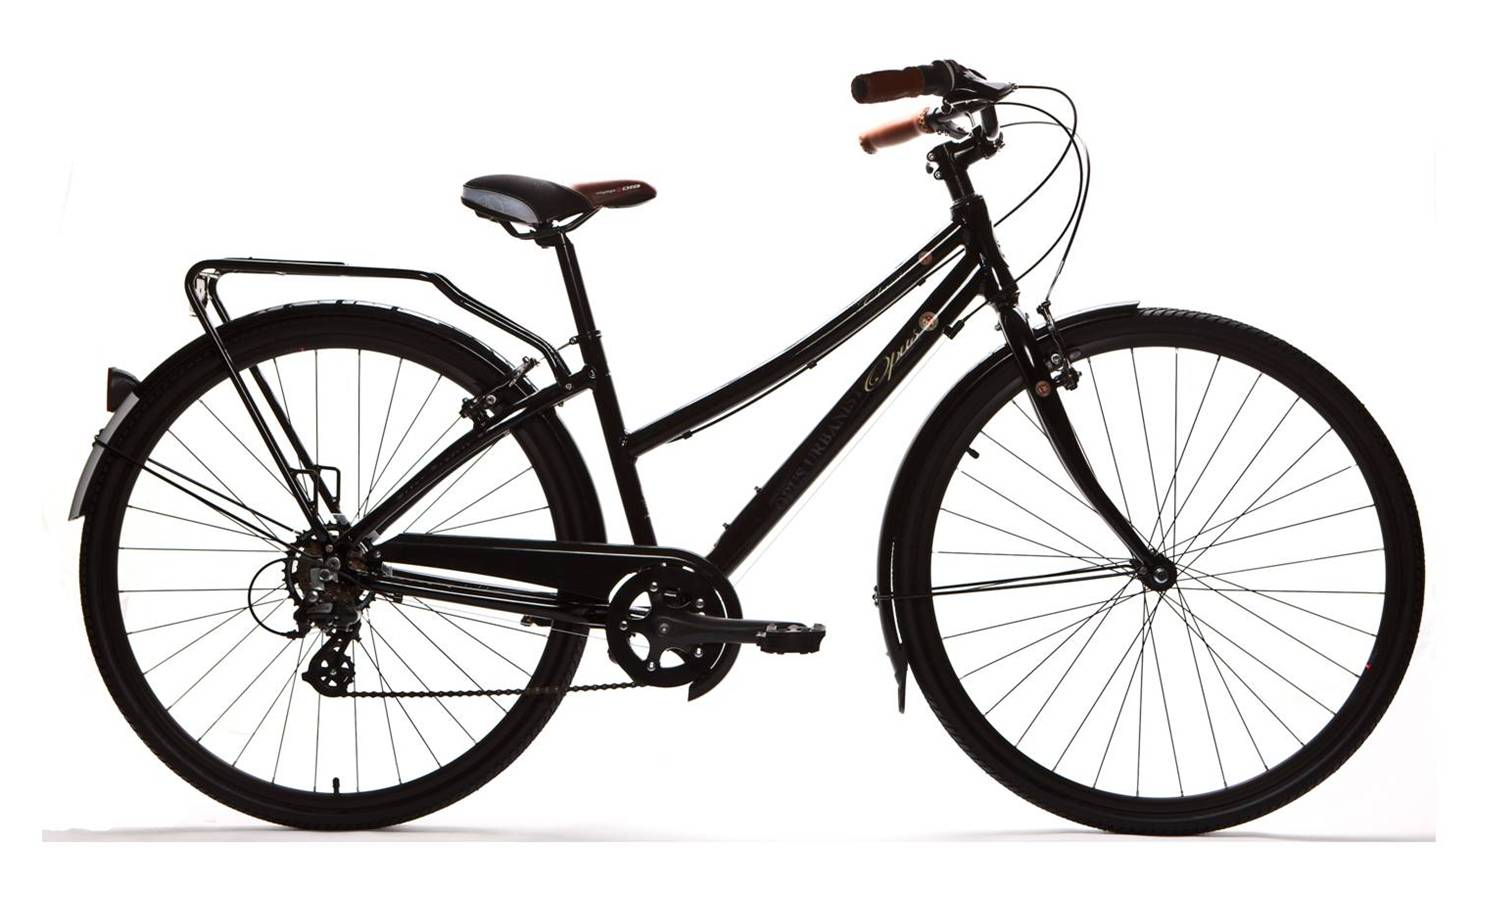 Opus Womens Urbanista Town Bike Rentals for city tours and rentals with North 48 Bicycles in Victoria BC Canada